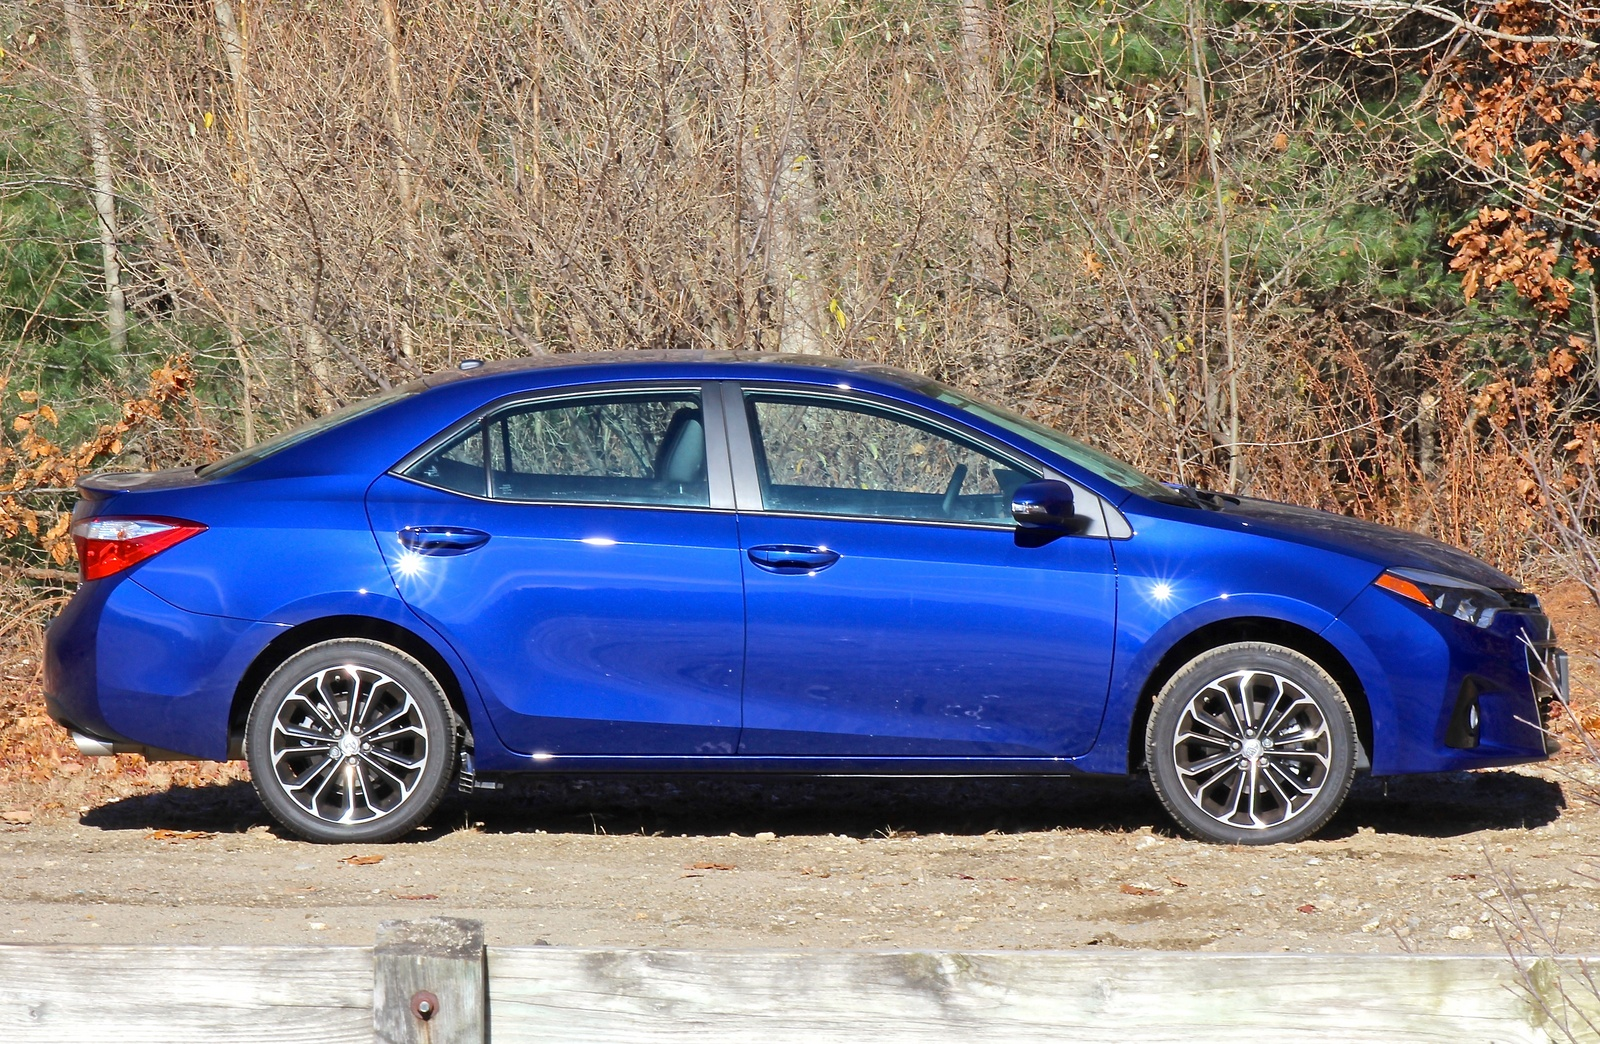 Side view of the 2014 Toyota Corolla